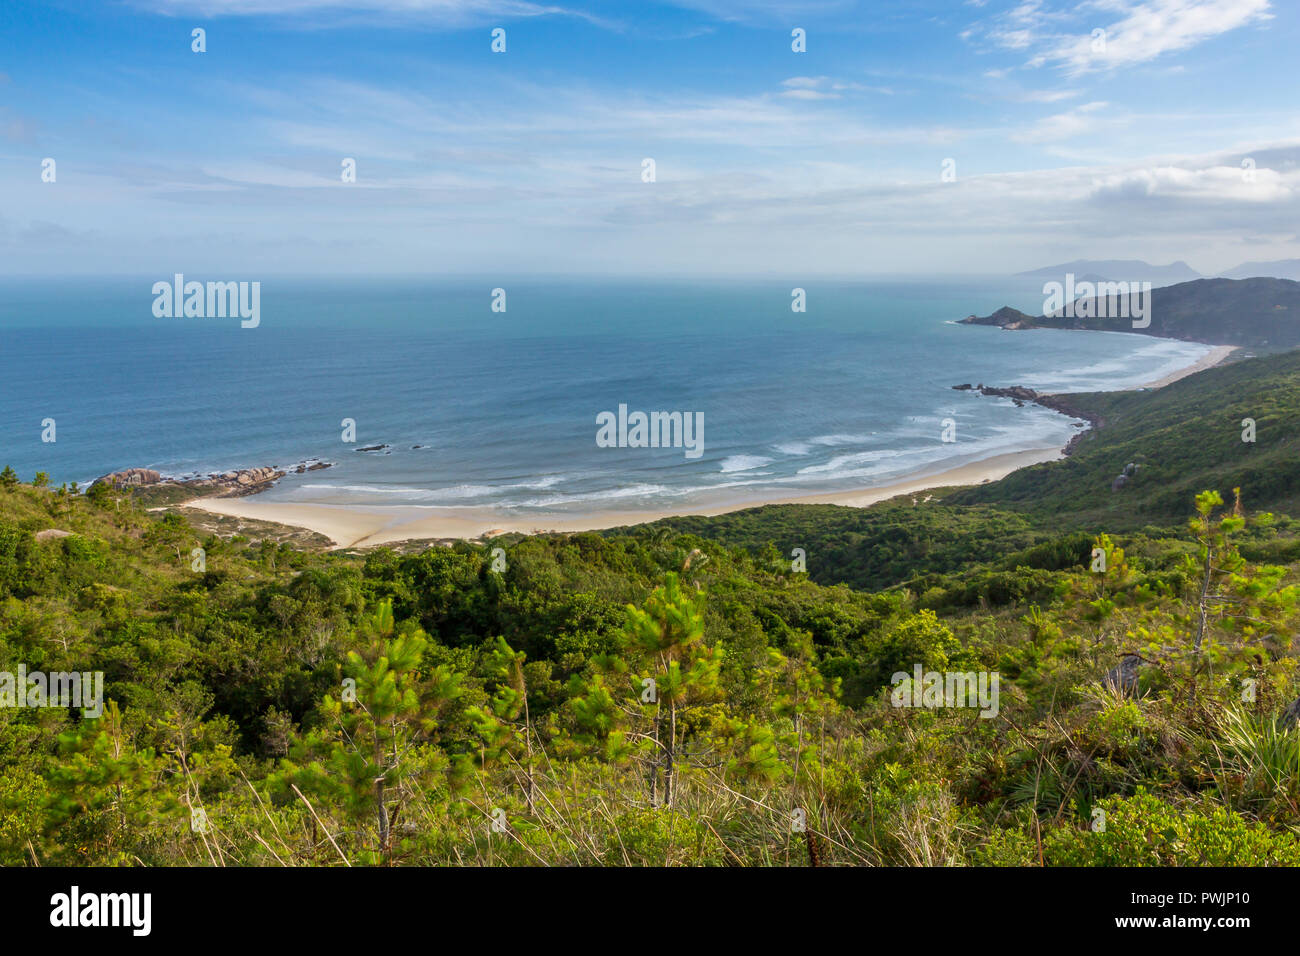 View from a lookout over Galhetas Beach and Mole Beach, Florianópolis, Santa Catarina, Brazil, South America - Stock Image